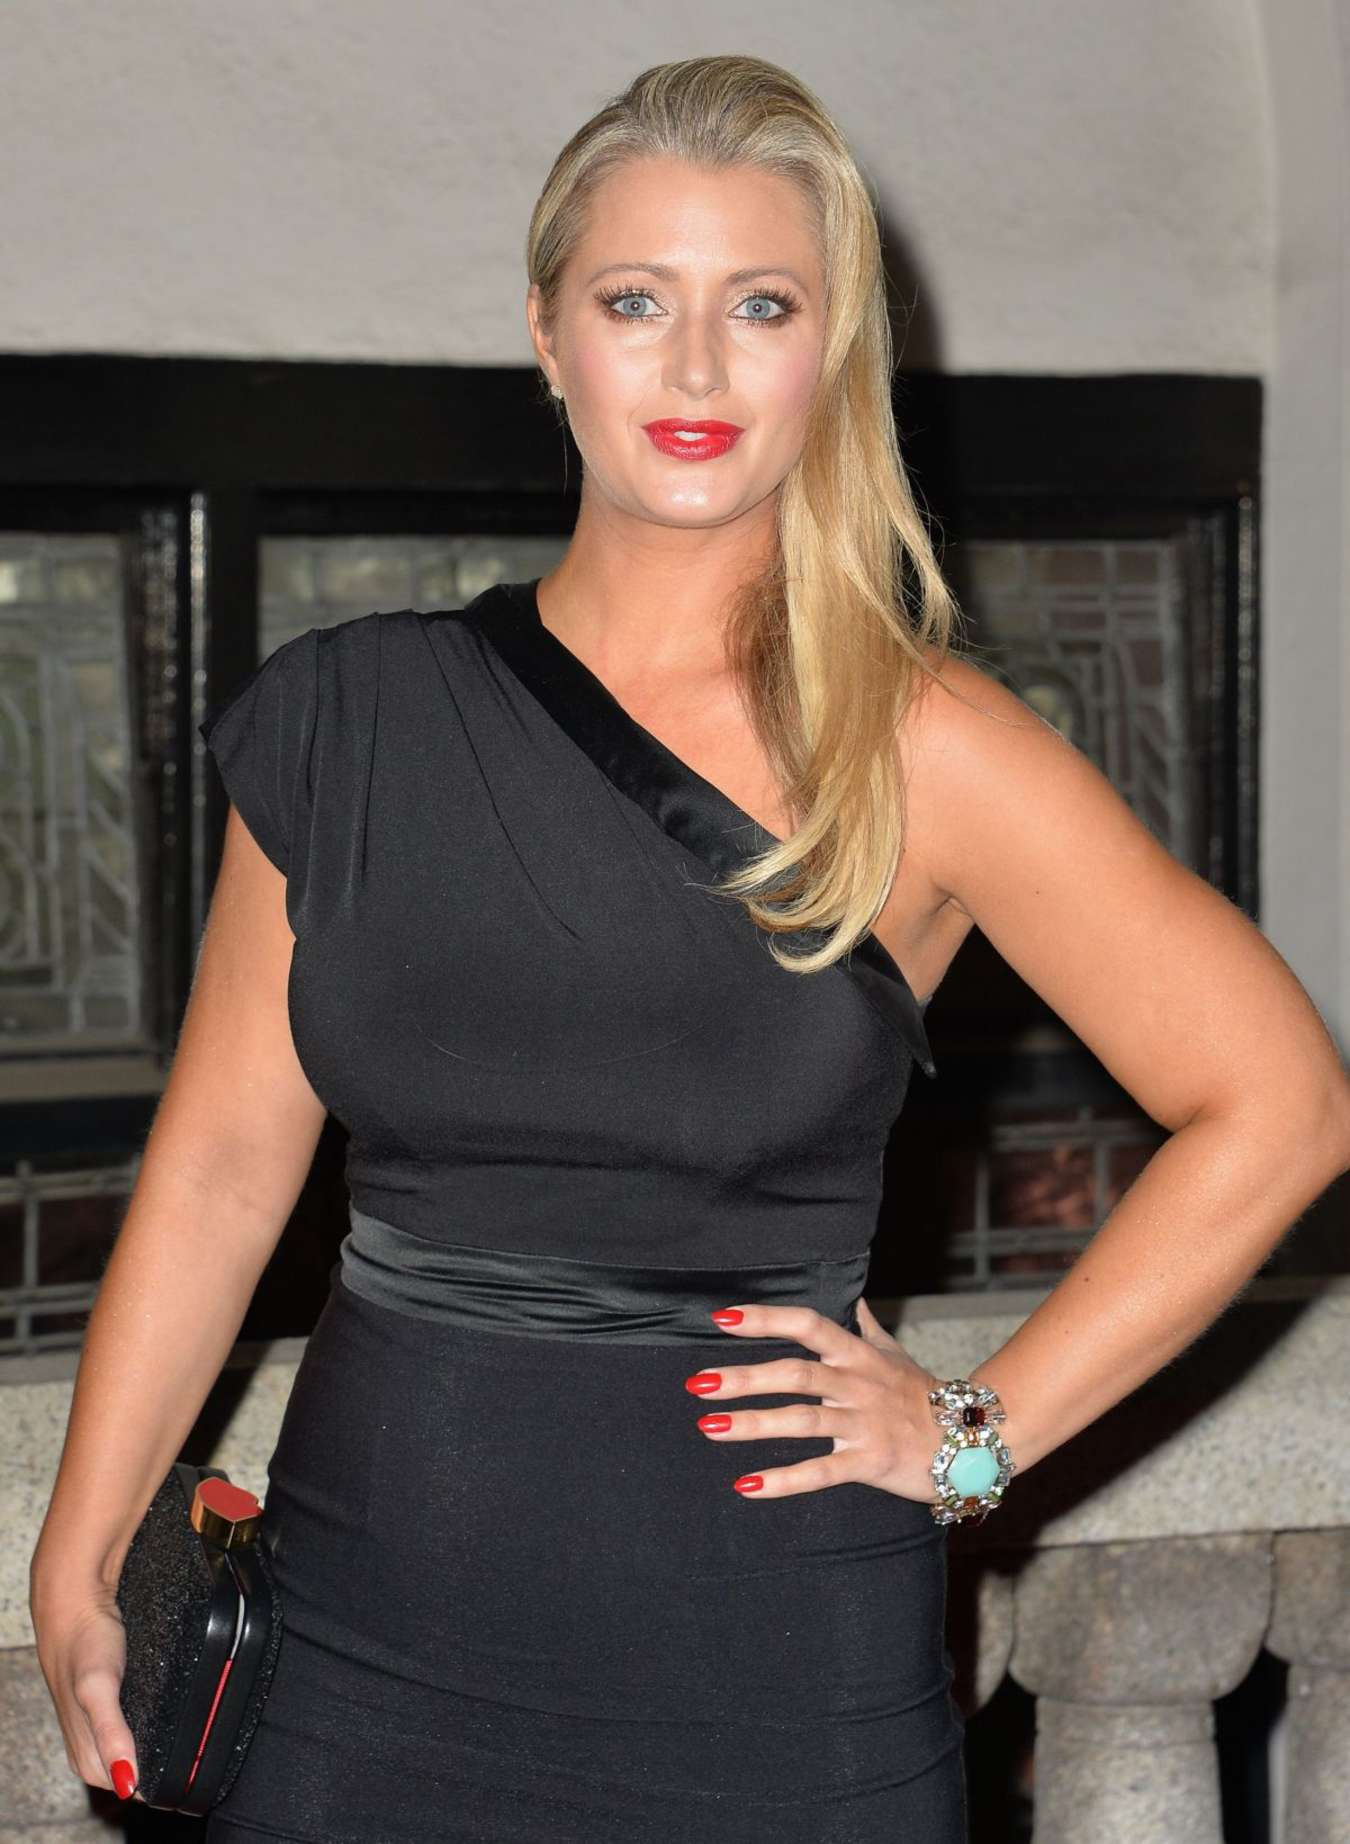 Celebrites Hayley McQueen nude (58 foto and video), Ass, Paparazzi, Boobs, butt 2018